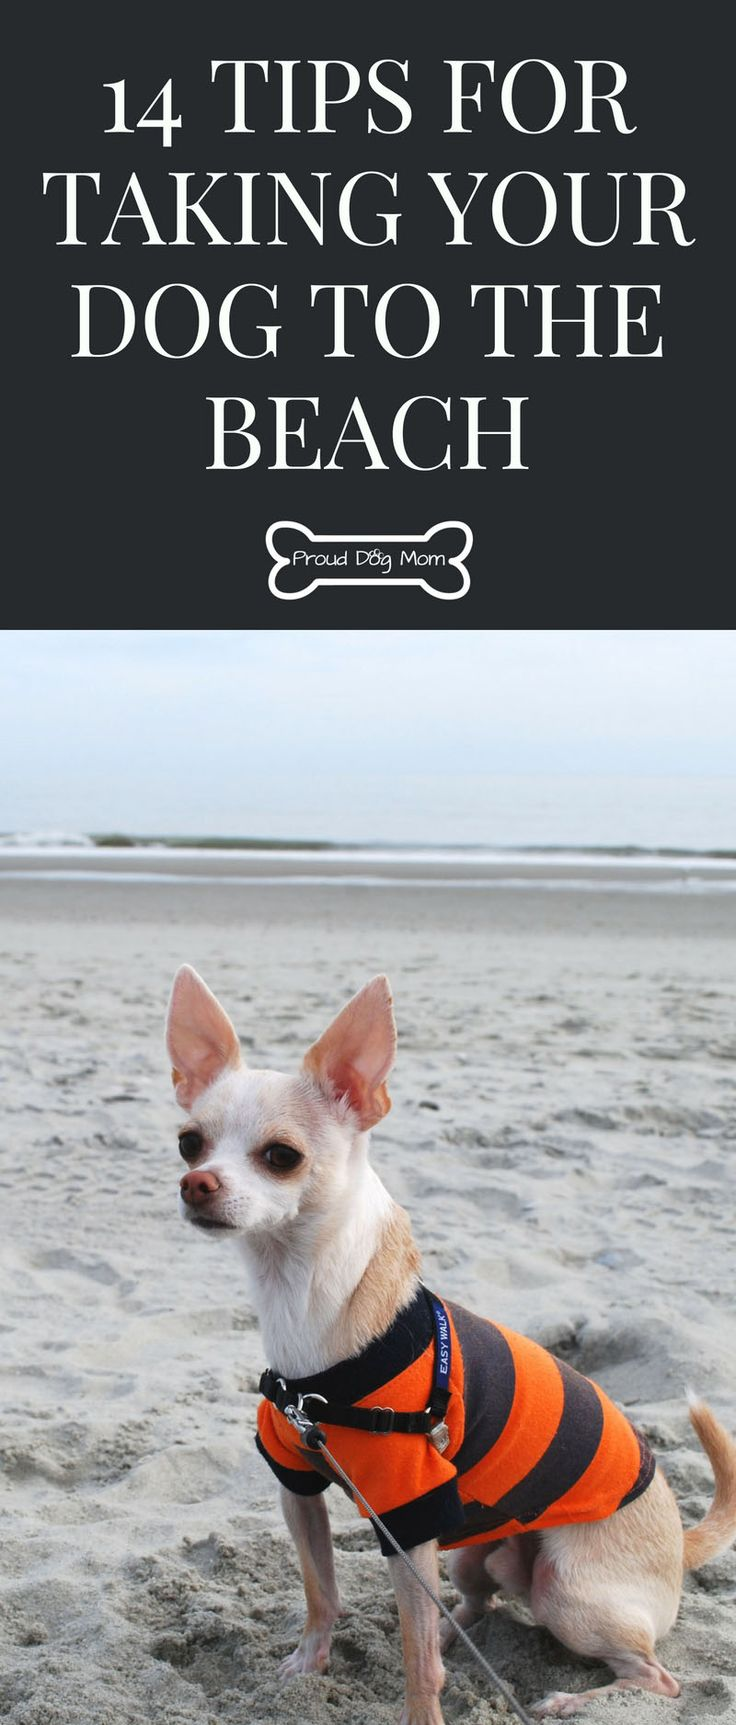 14 Tips For Taking Your Dog To The Beach | Dog Care Tips |